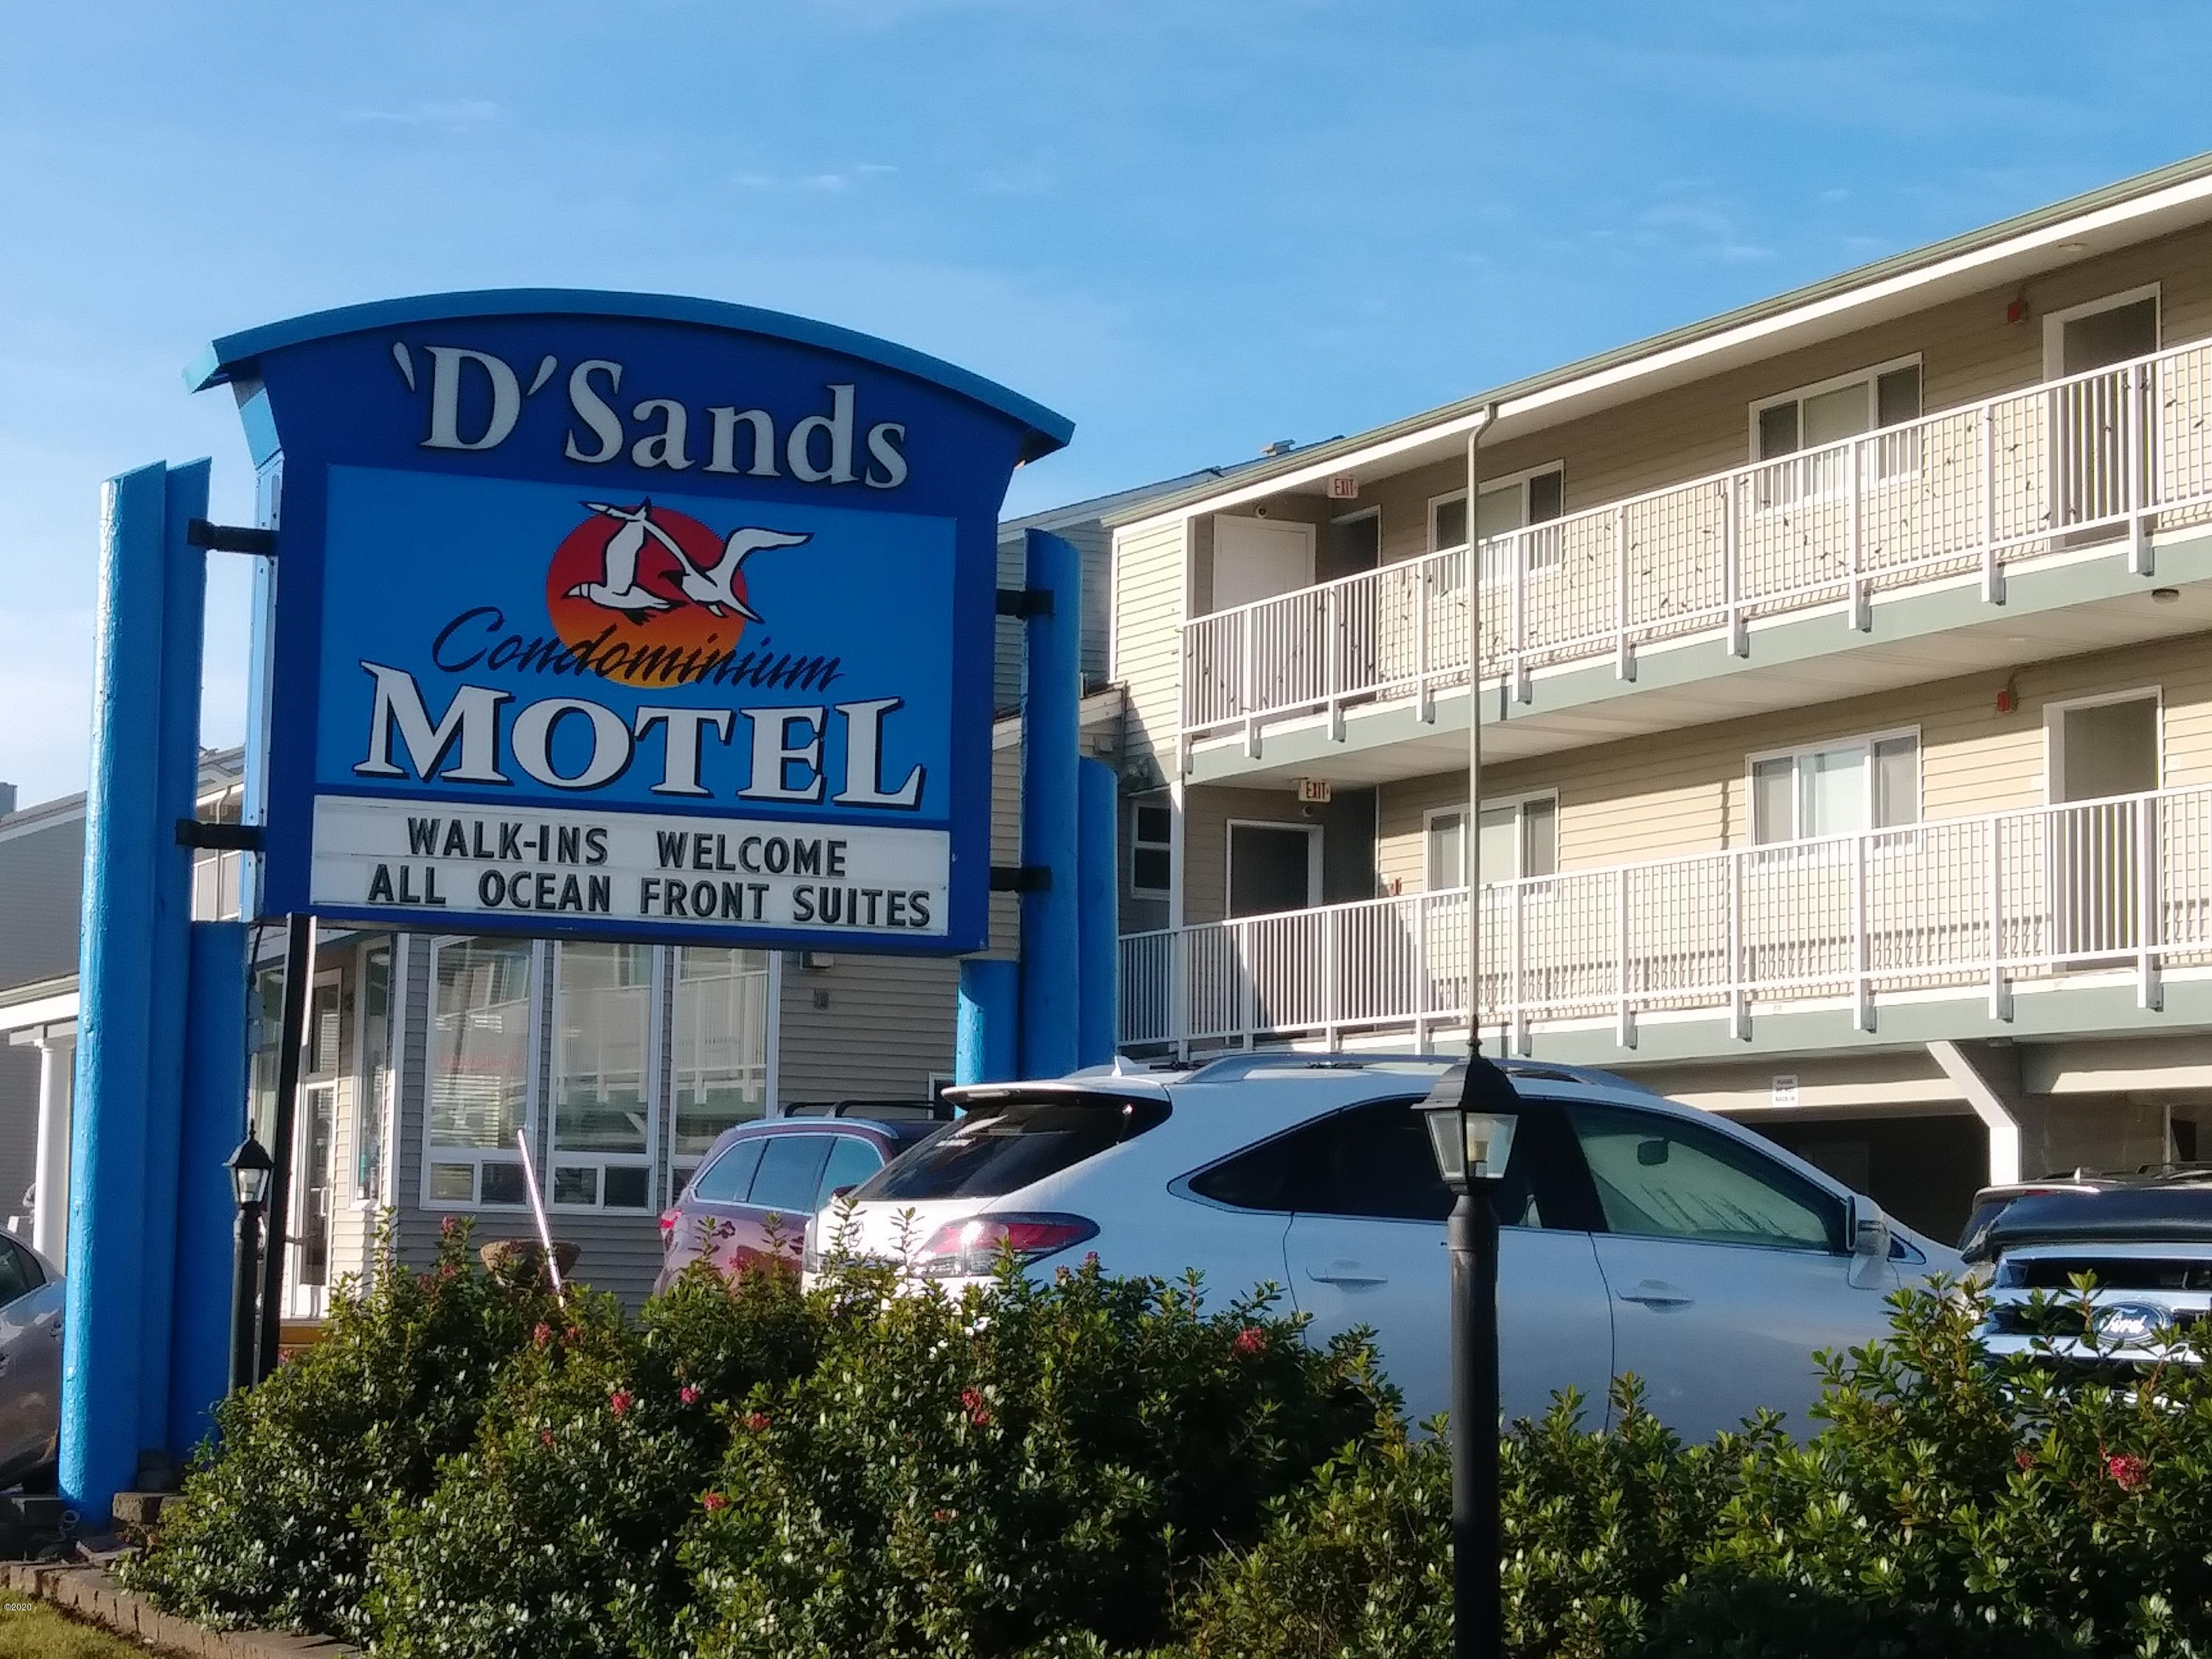 171 SW Hwy 101,, UNIT 217, Lincoln City, OR 97367 - D Sands